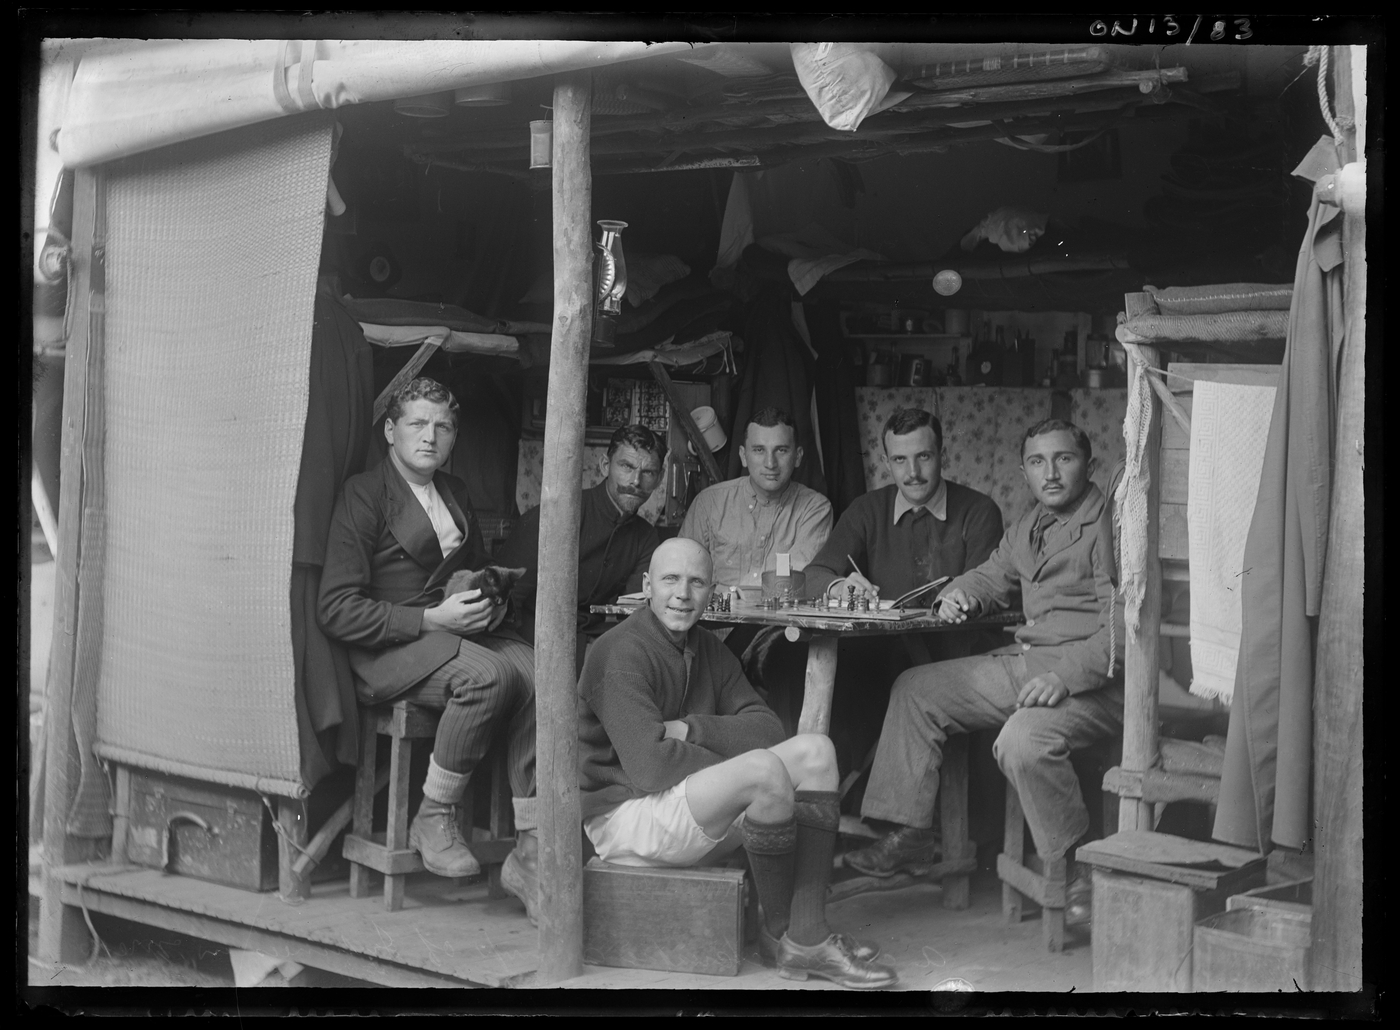 Black and white photograph of men sitting around a table playing chess, in a make shift shelter.